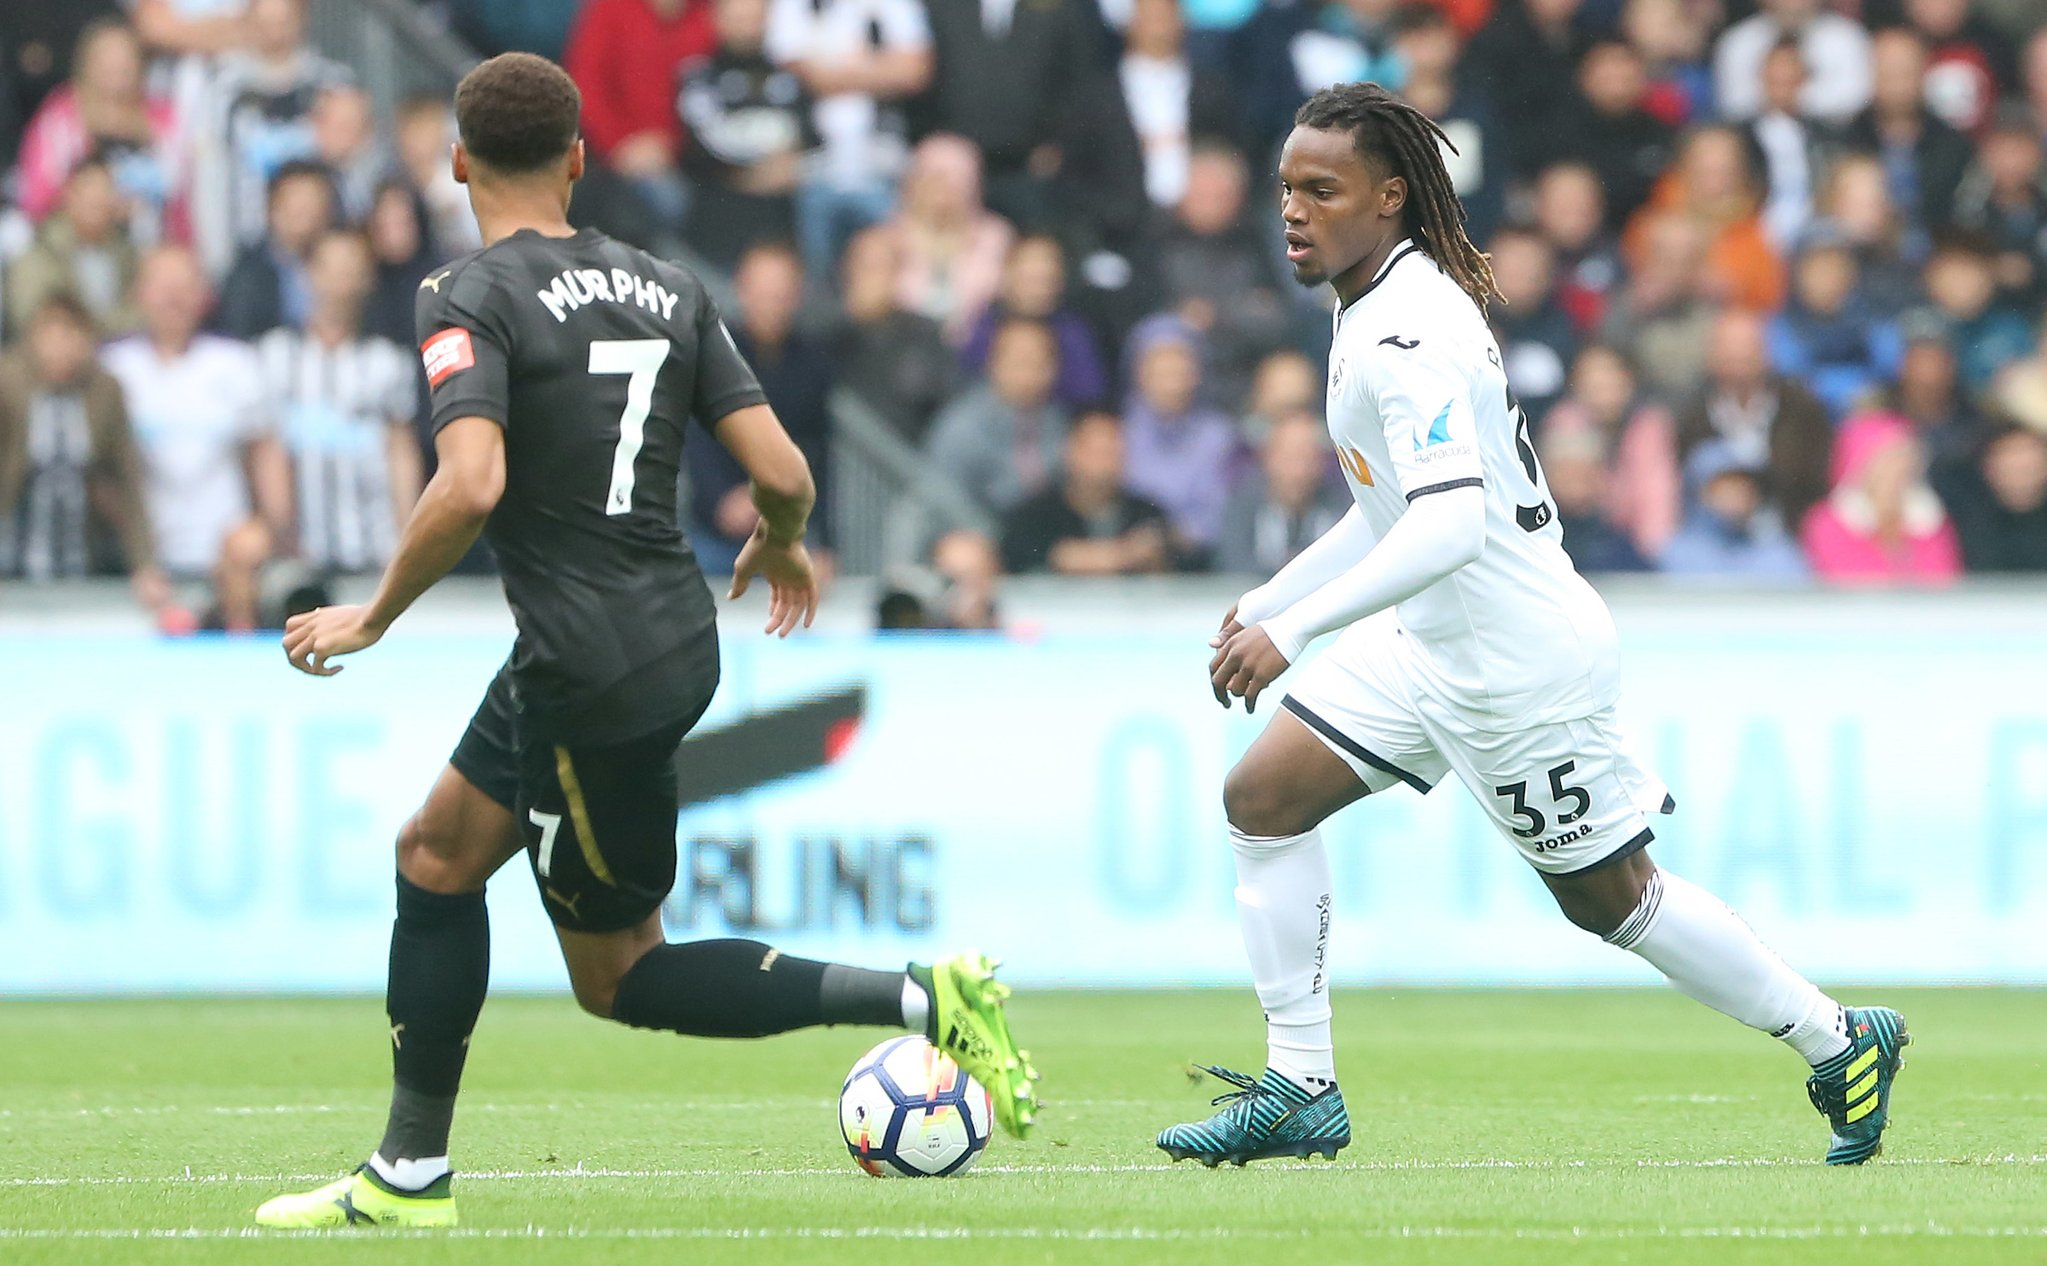 Abraham Fires Blanks, Sanches Struggles As Newcastle Edge Swansea